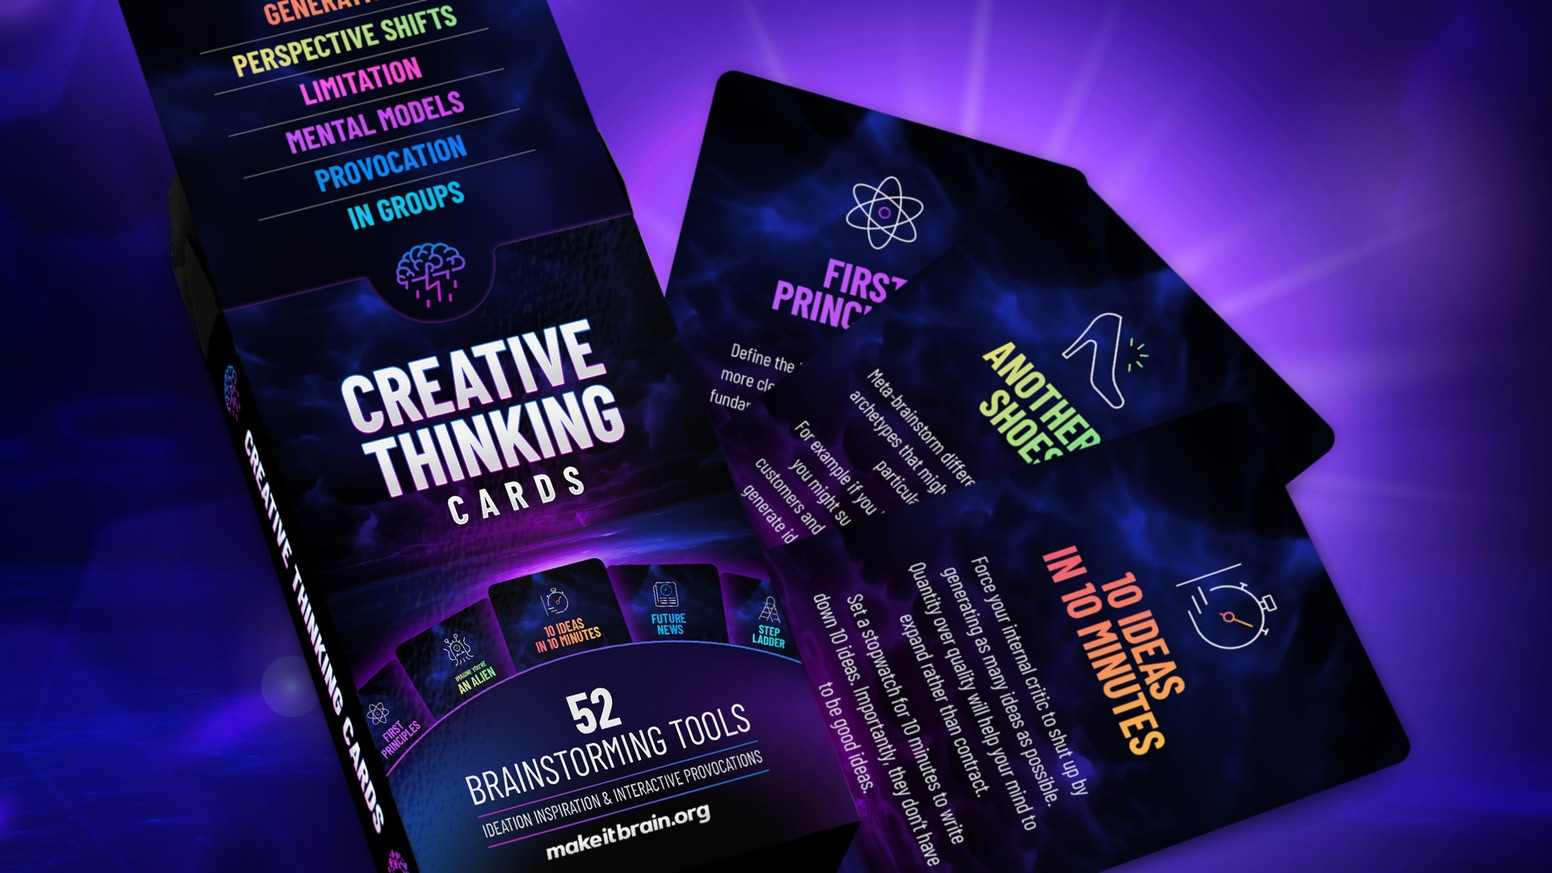 52 brainstorming tools to stoke your creative potential